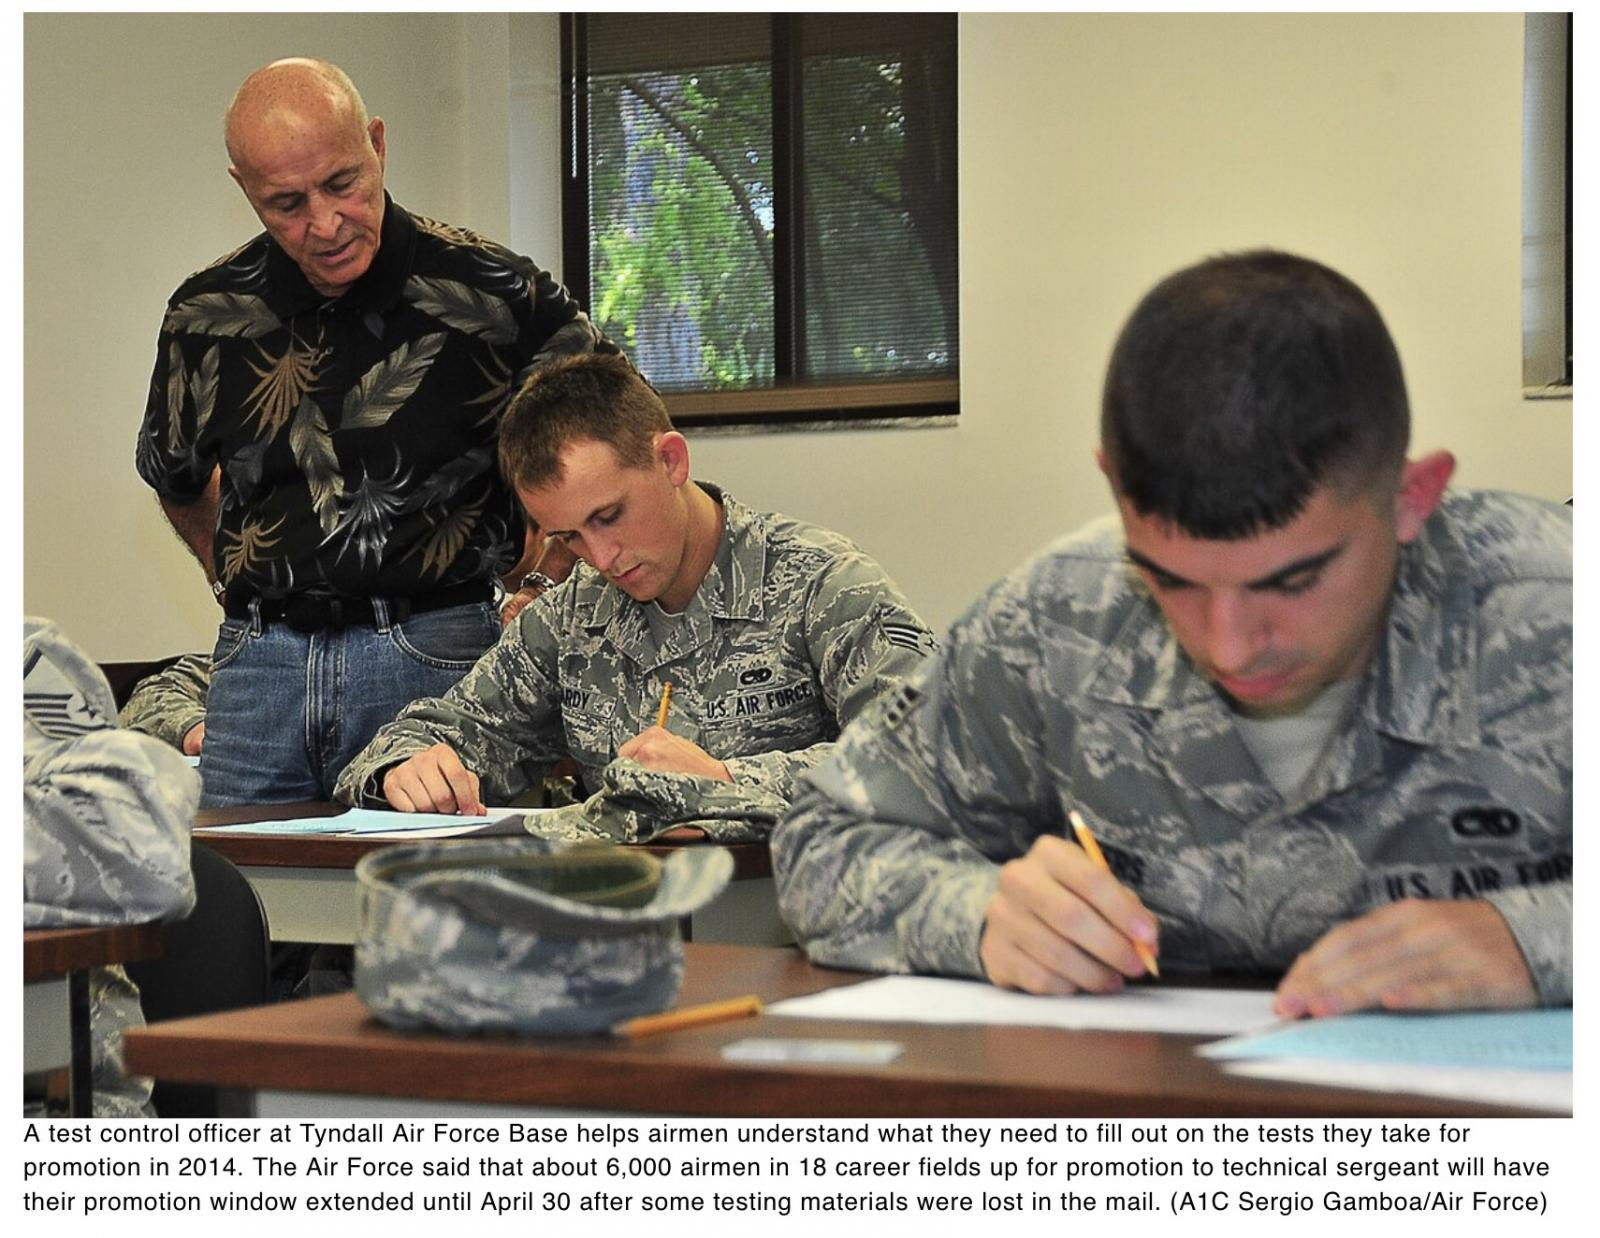 Tech sergeant promotion tests lost in mail; AFPC extends window for affected airmen